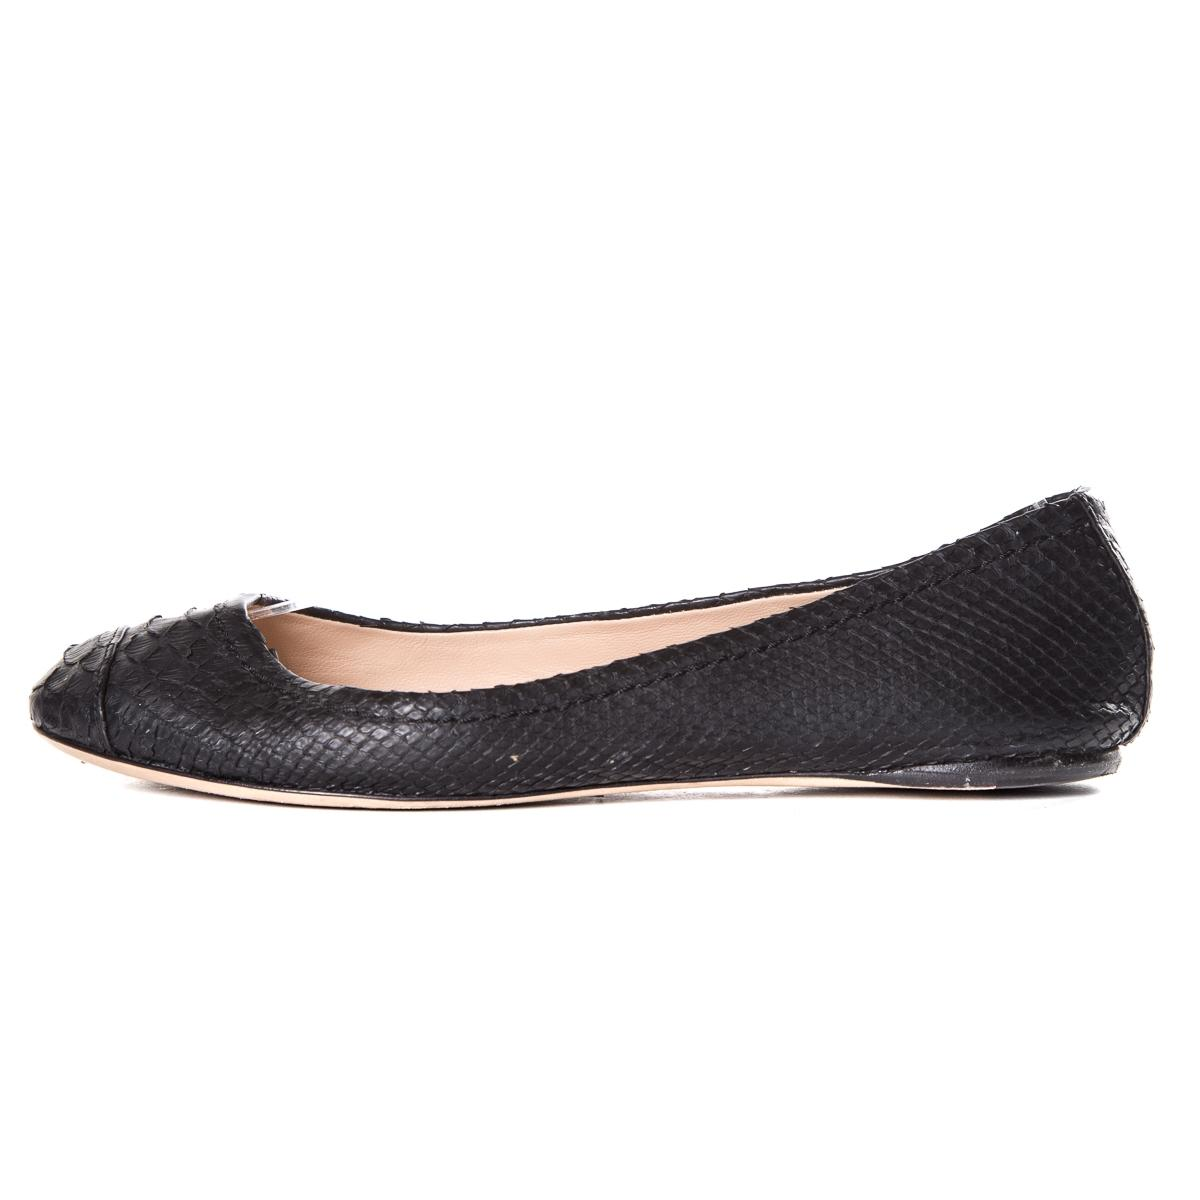 genuine online Reed Krakoff Embossed Round-Toe Flats discount pictures outlet good selling pick a best for sale clearance outlet store dQrPUxby